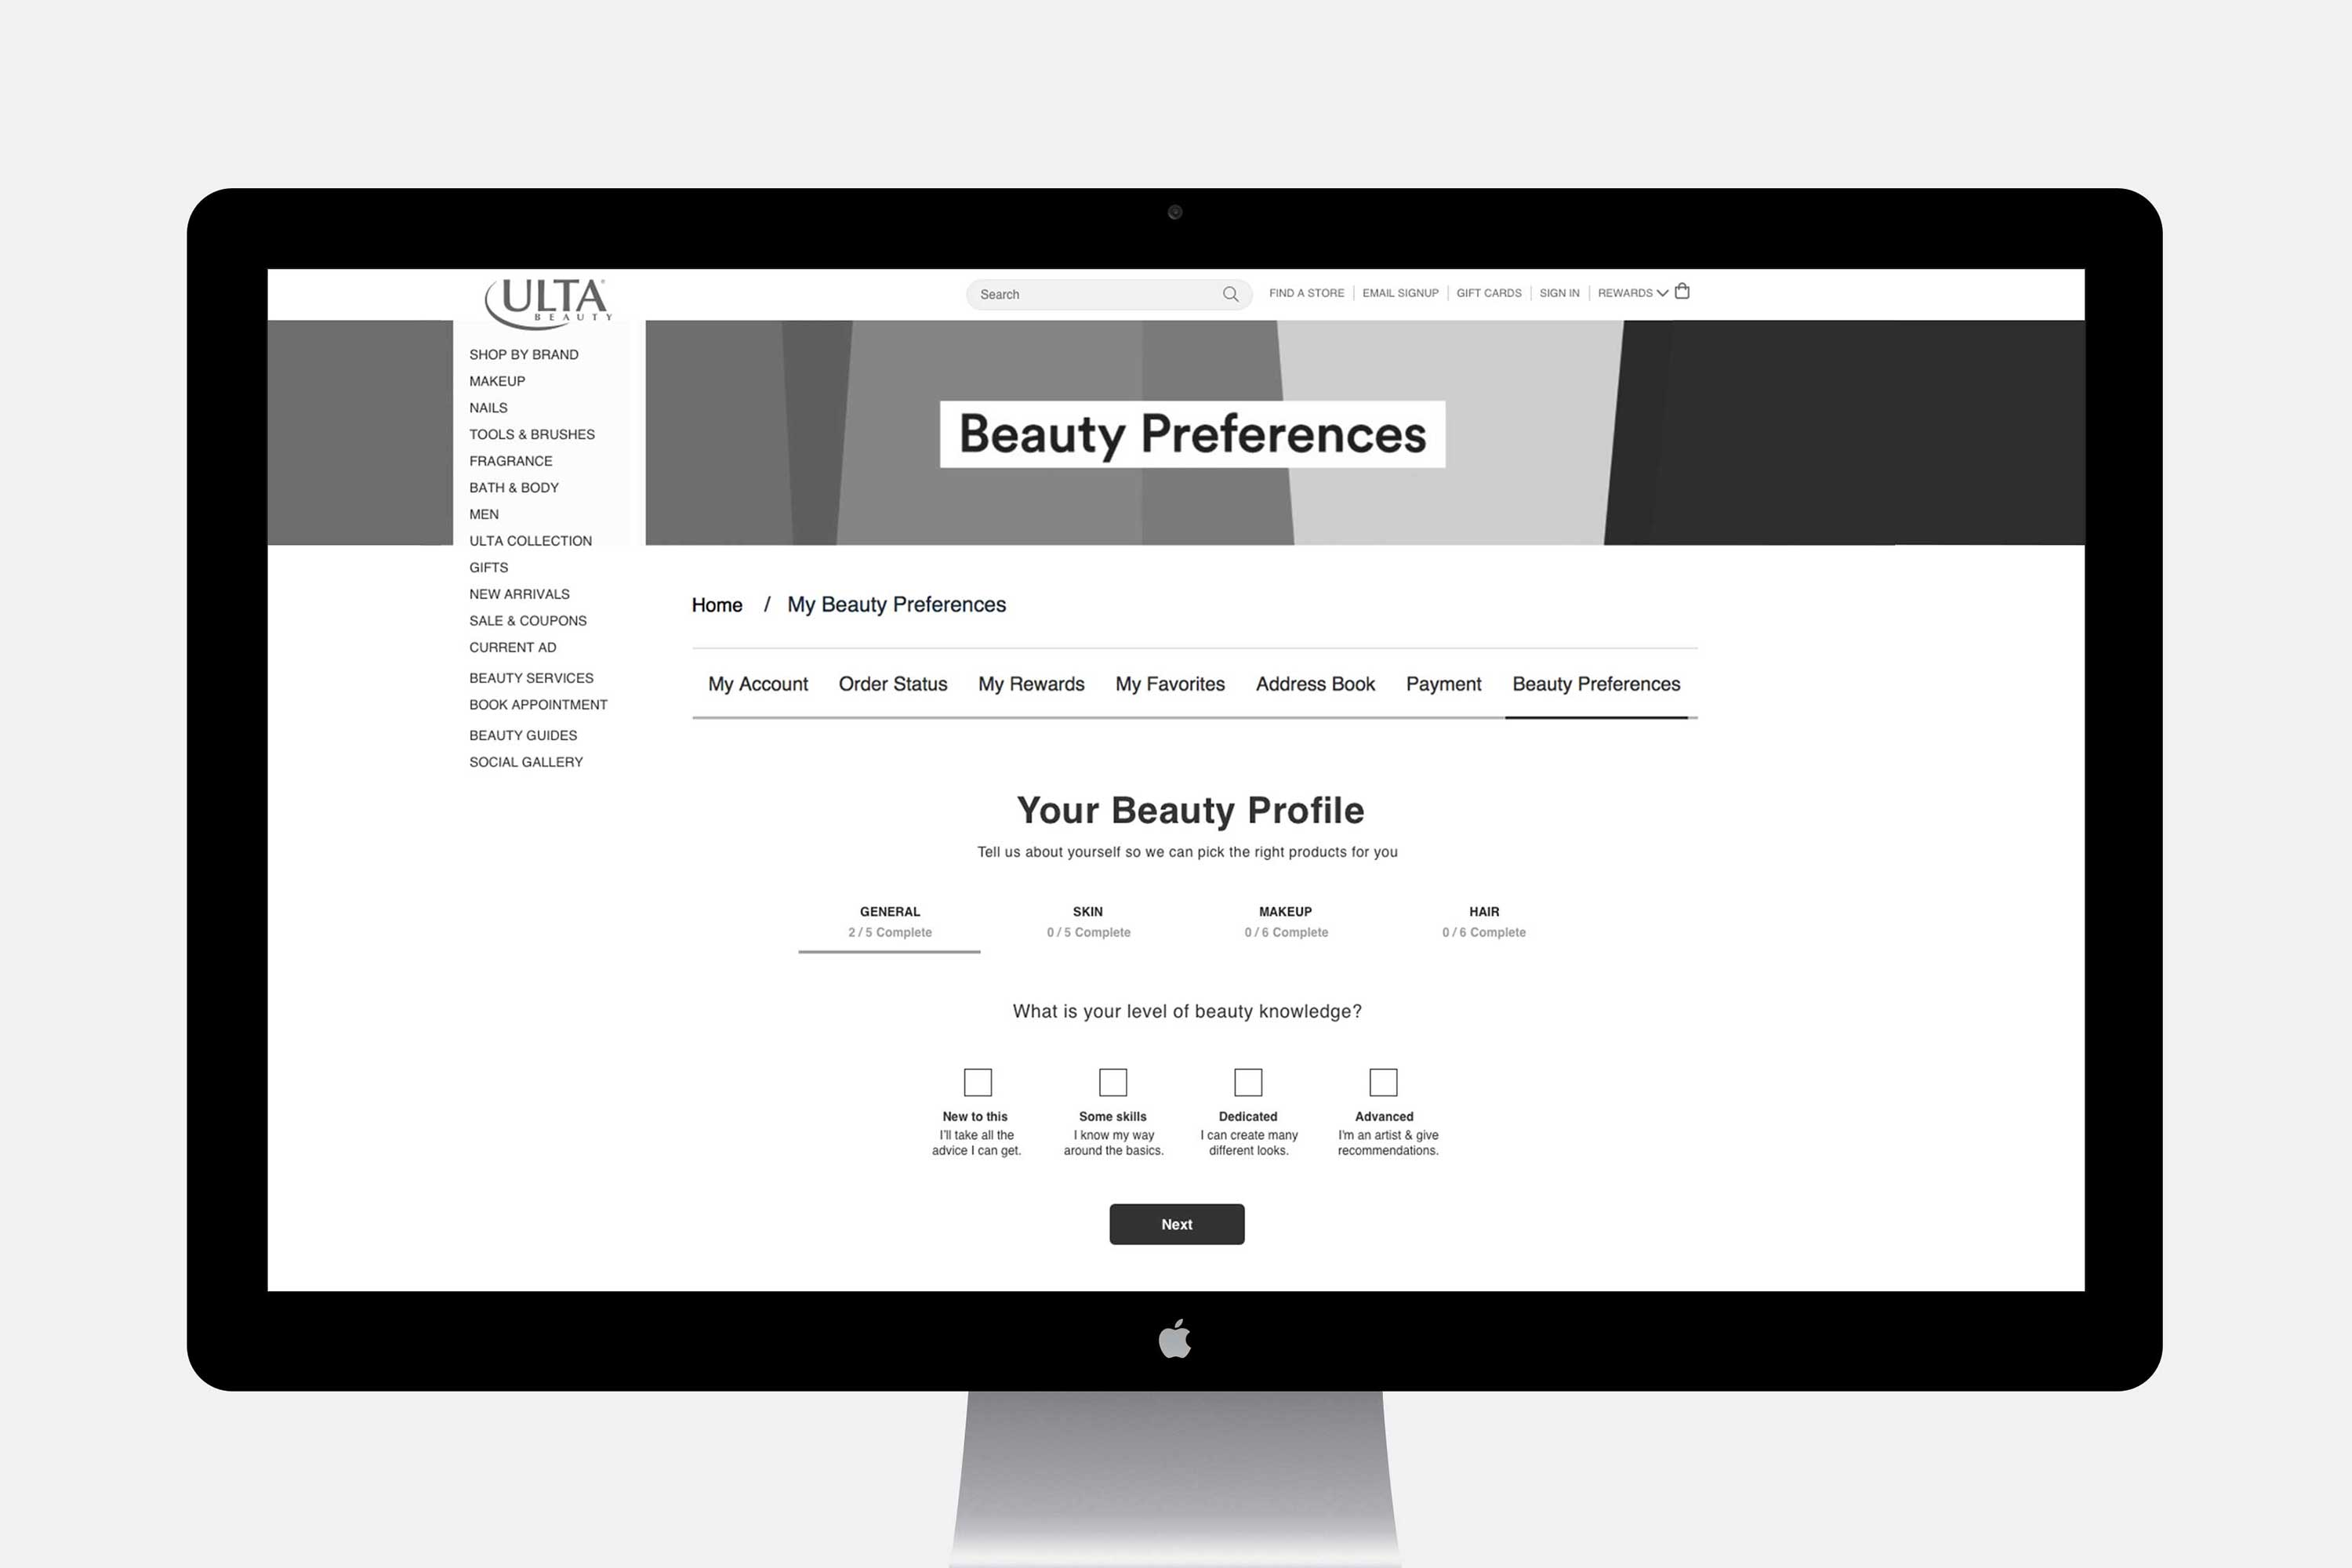 ulta beauty preferences quiz desktop